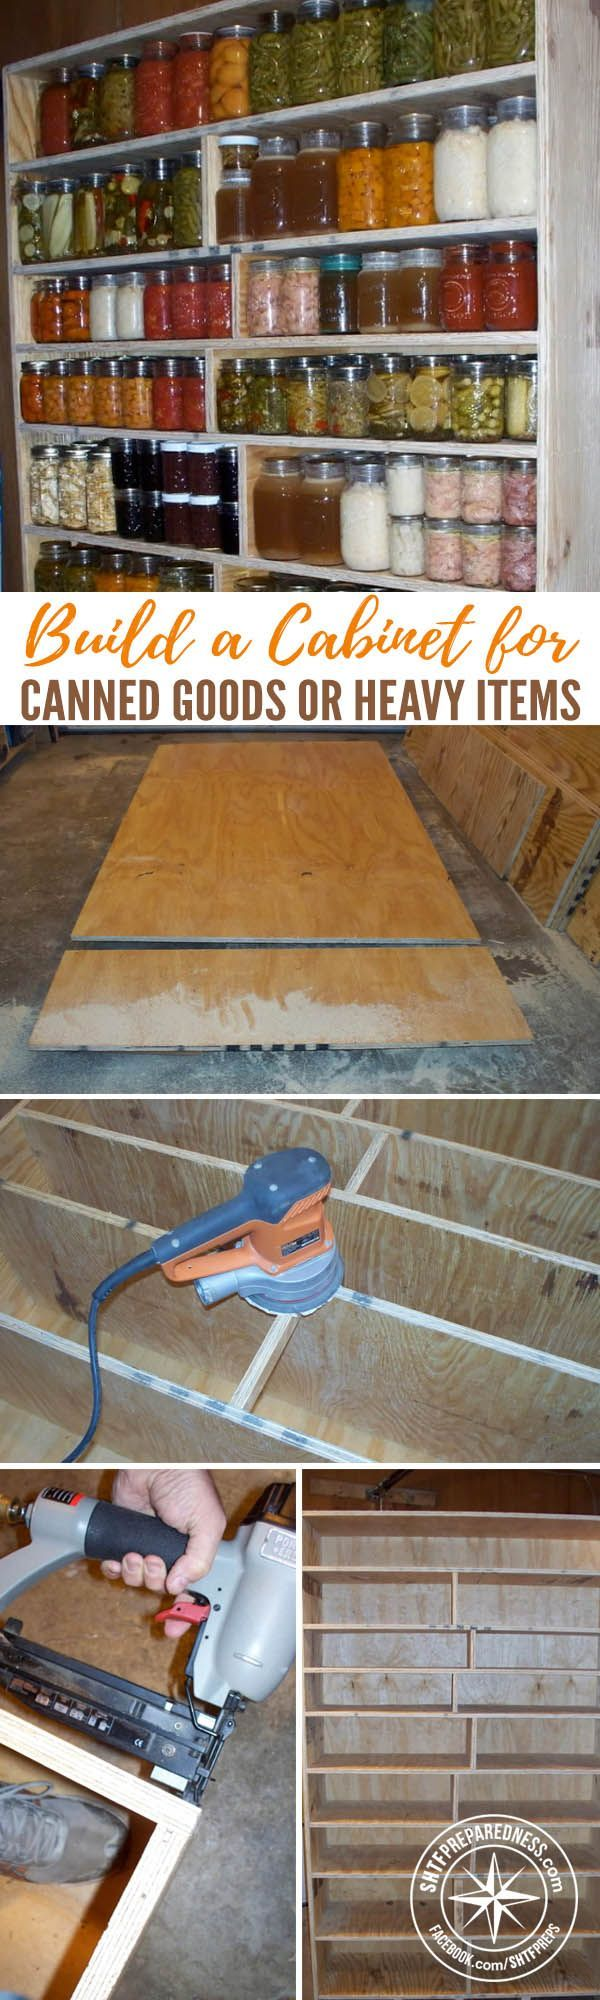 How To Build A Cabinet For Storing Canned Goods or Heavy Items — This tutorial has pictures to help you build your own and does a great job of explaining exactly how to make this awesome cabinet.